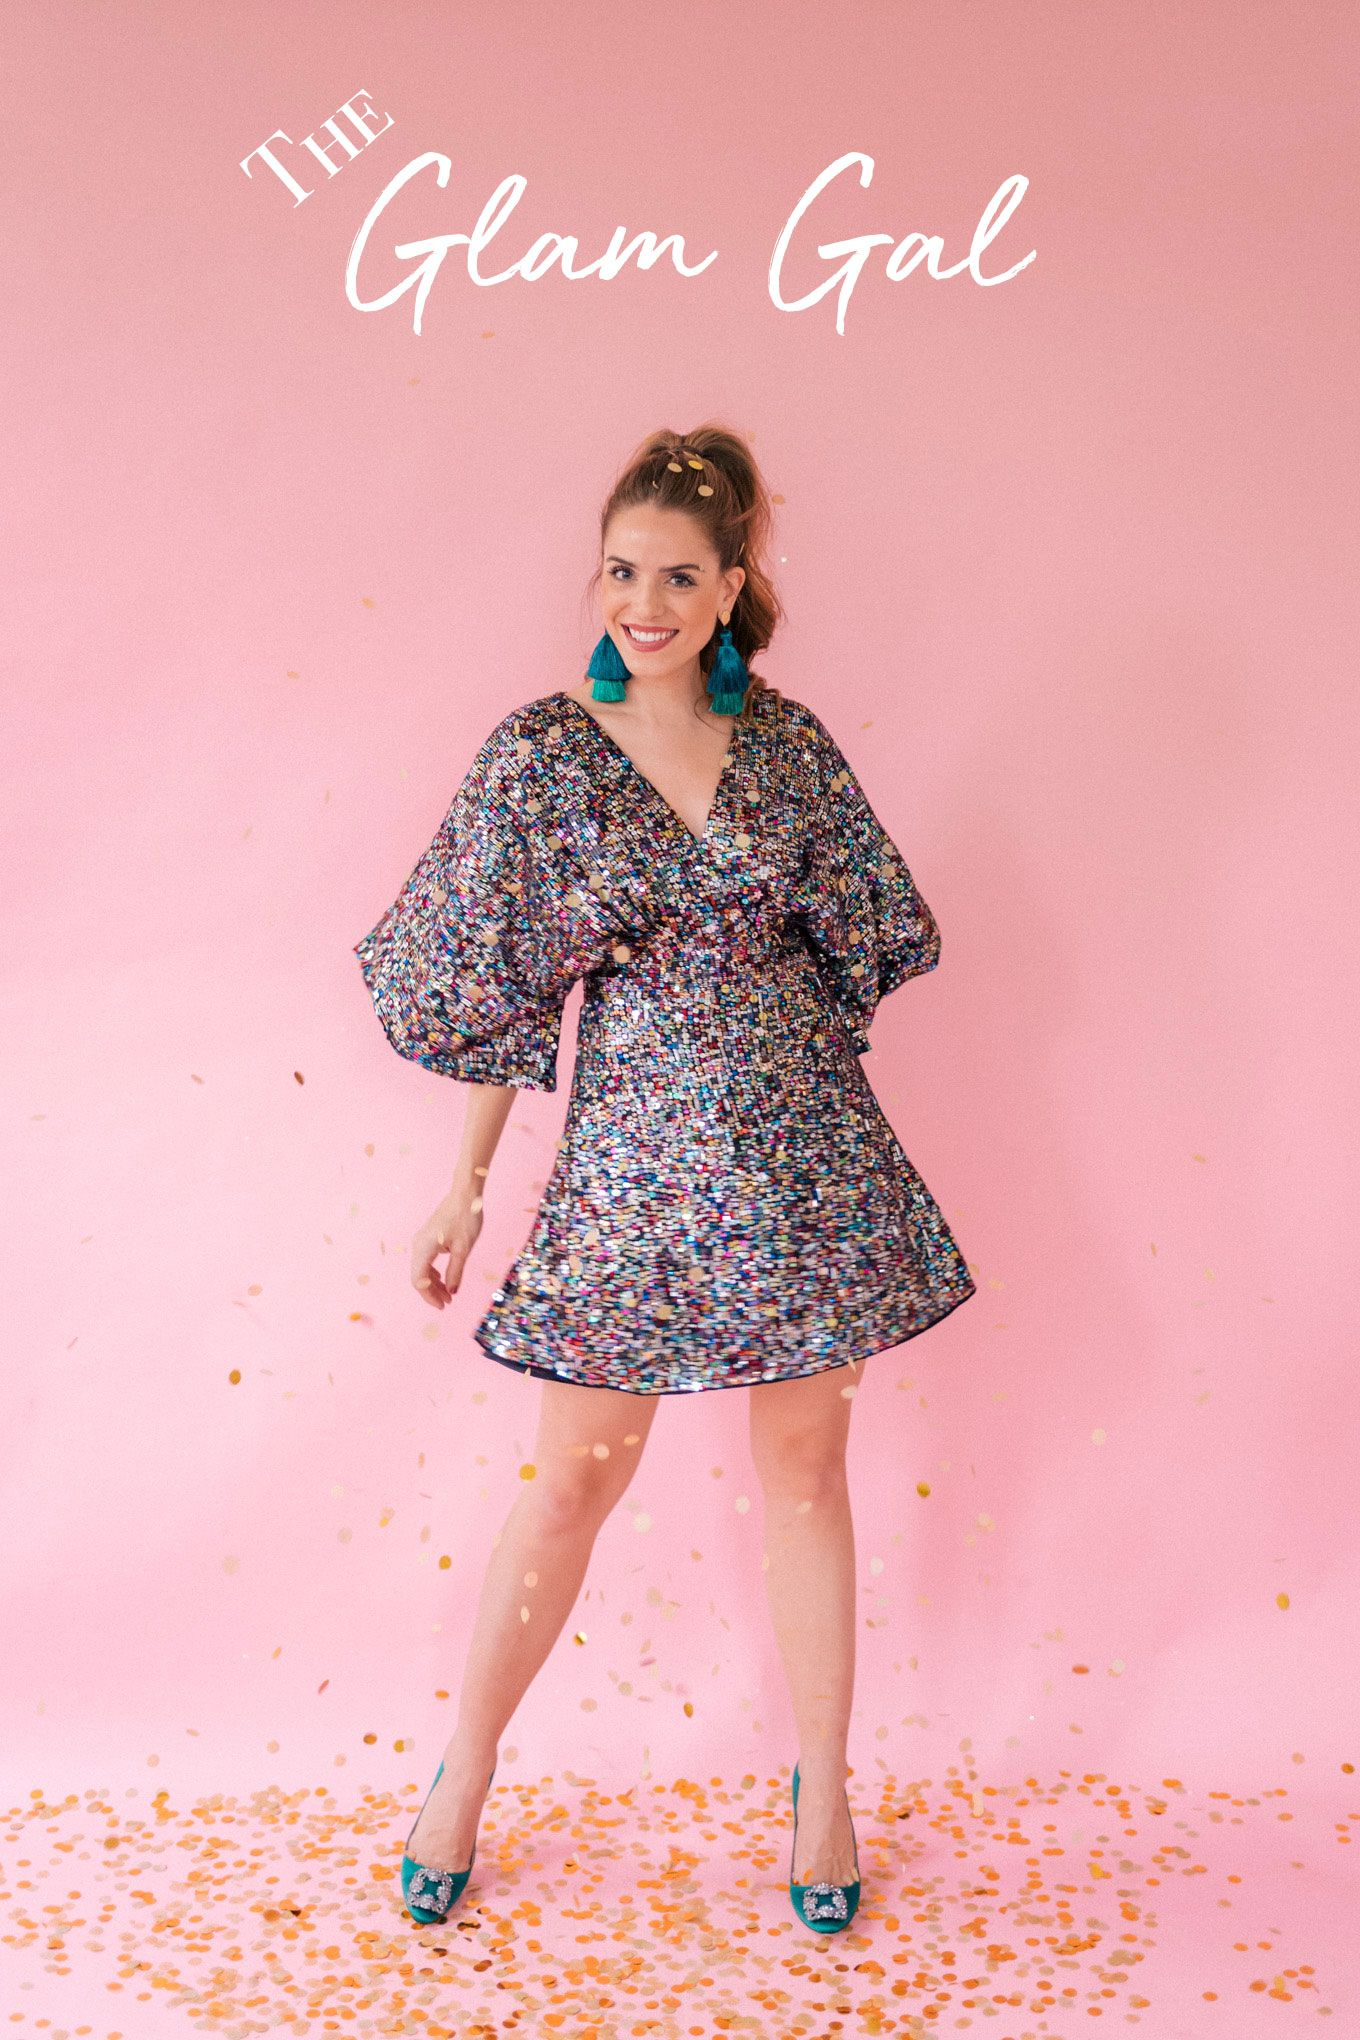 Gal Meets Glam 4 Holiday Party Styles - The Glam Gal BHLDN Dress ...